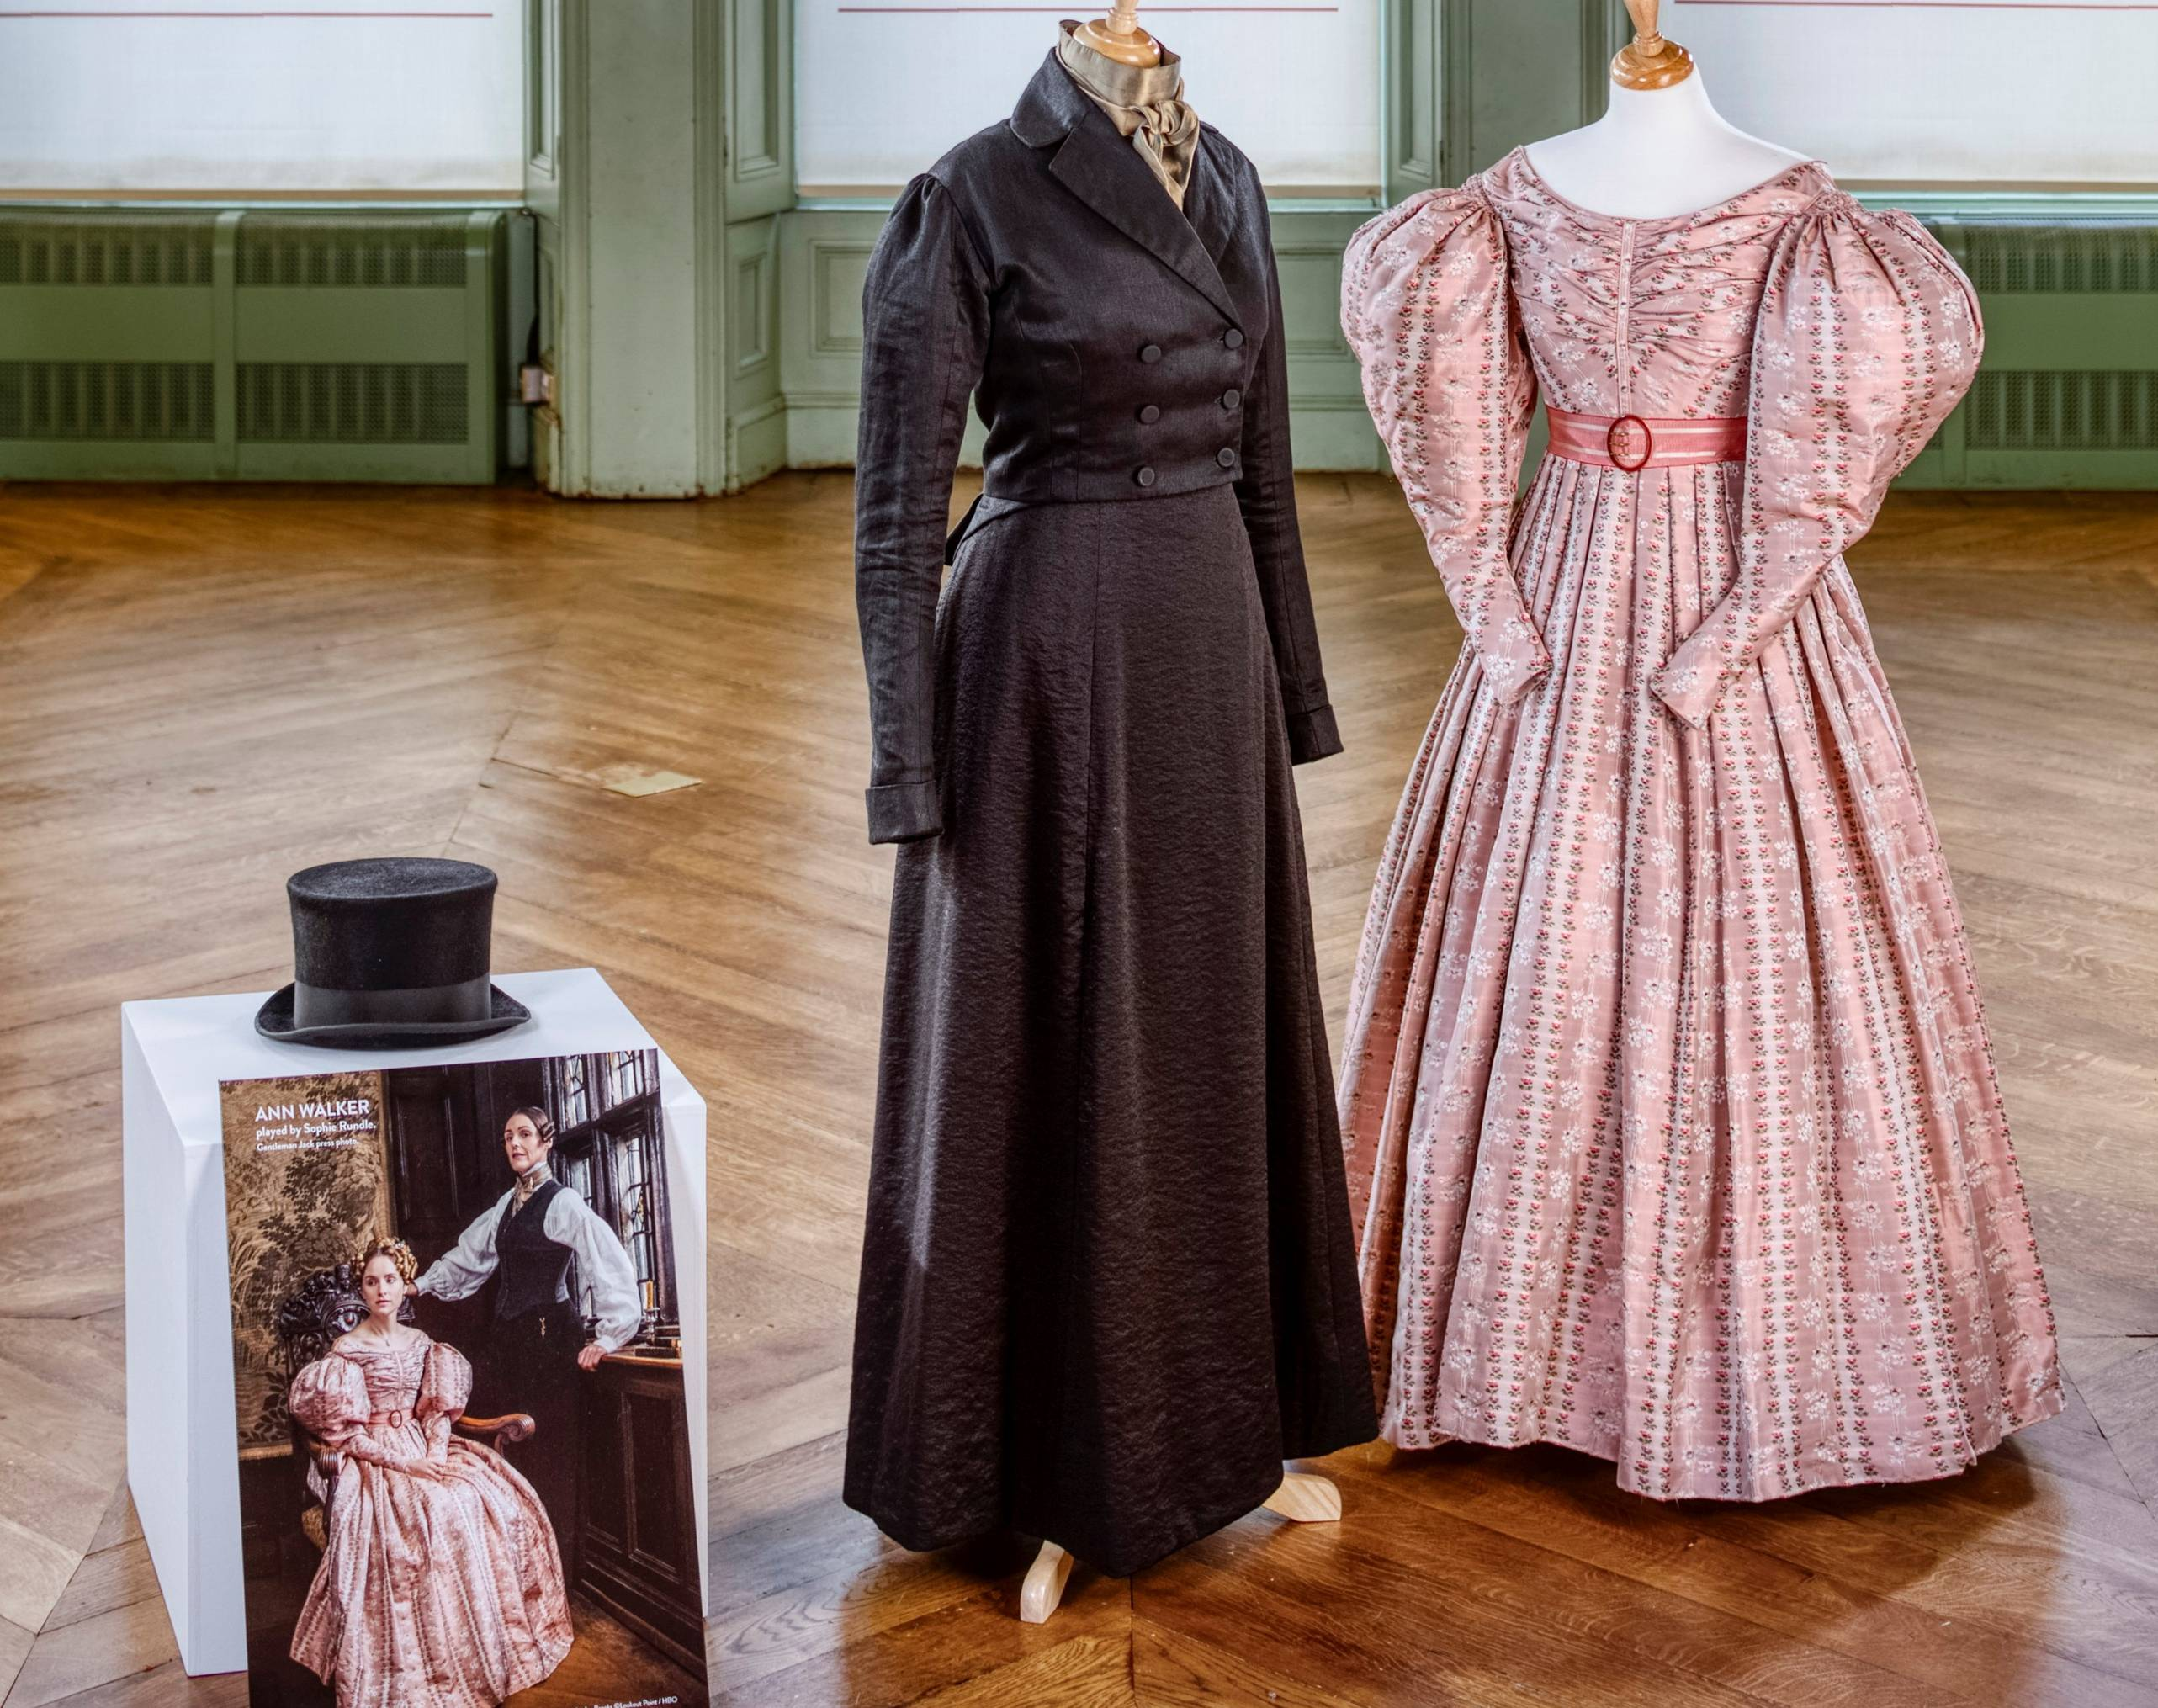 Gentleman Jack costumes at Bankfield Museum